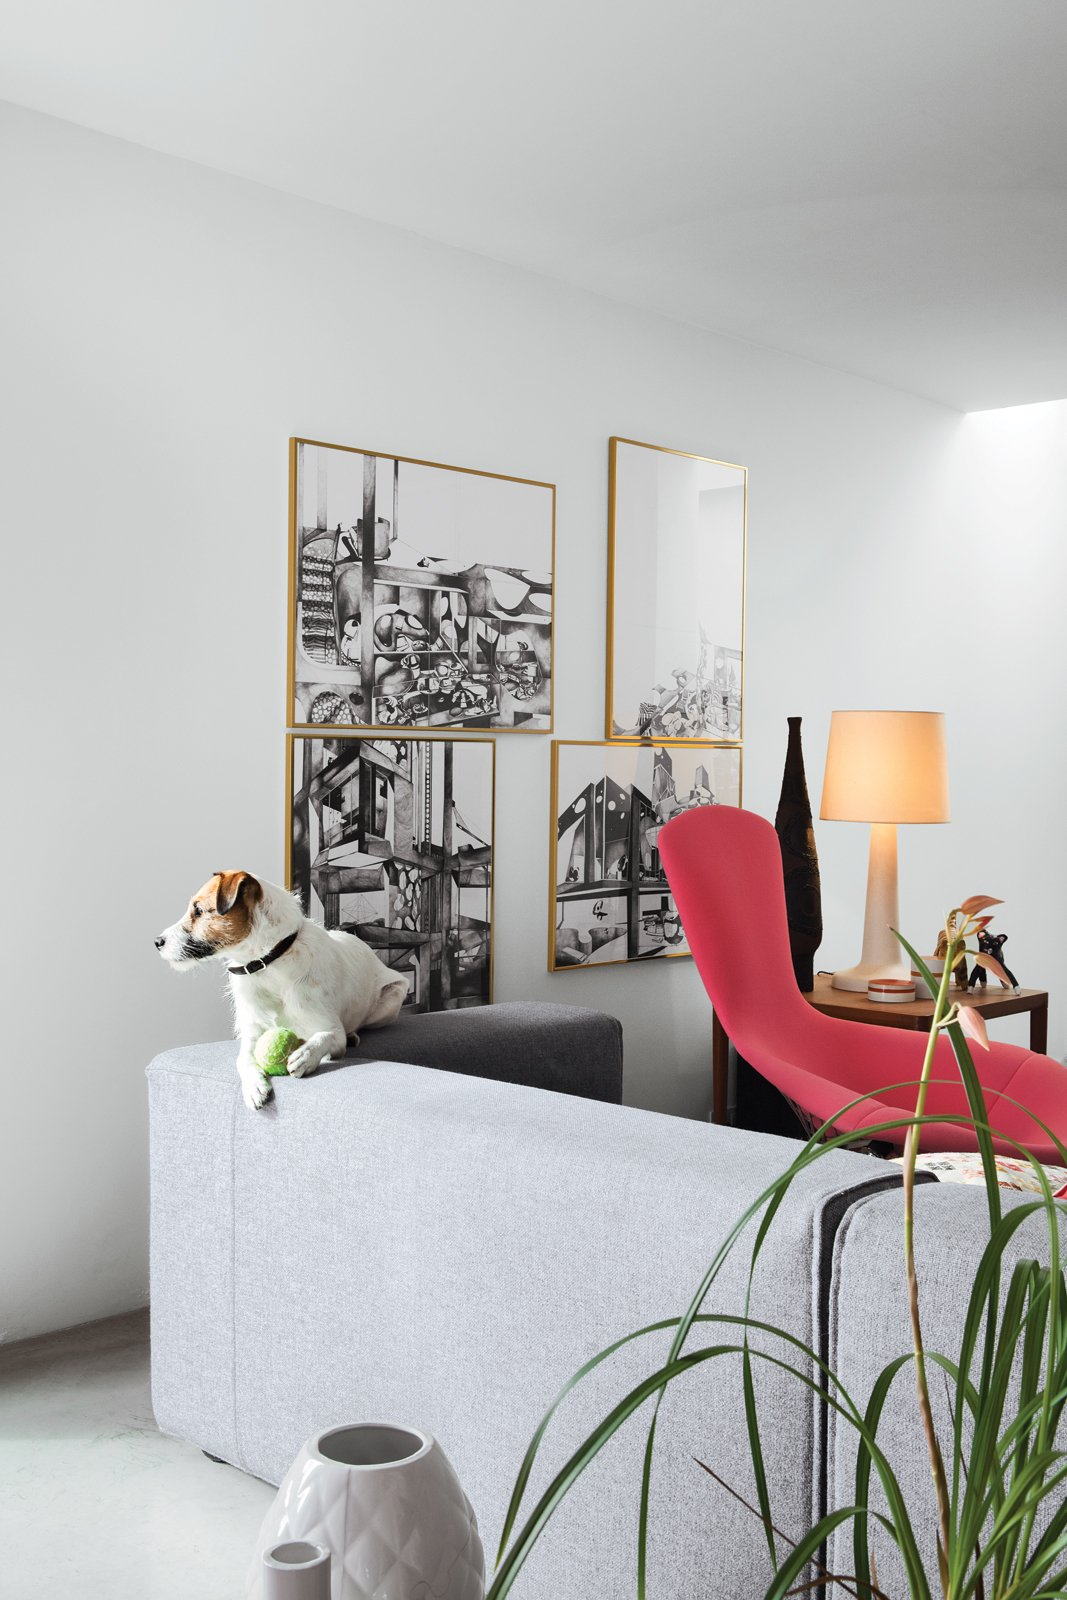 Ibbel, a Parson Russell terrier, and his tennis ball survey the living room from the back of a Cuba sofa by Rodolfo Dordoni for Cappellini. The framed drawings are by Poorter and Holdrinet.  Photo 18 of 25 in 25 Dogs Living in the Modern World from This Factory Switches Out Cattle-Fodder for Furniture